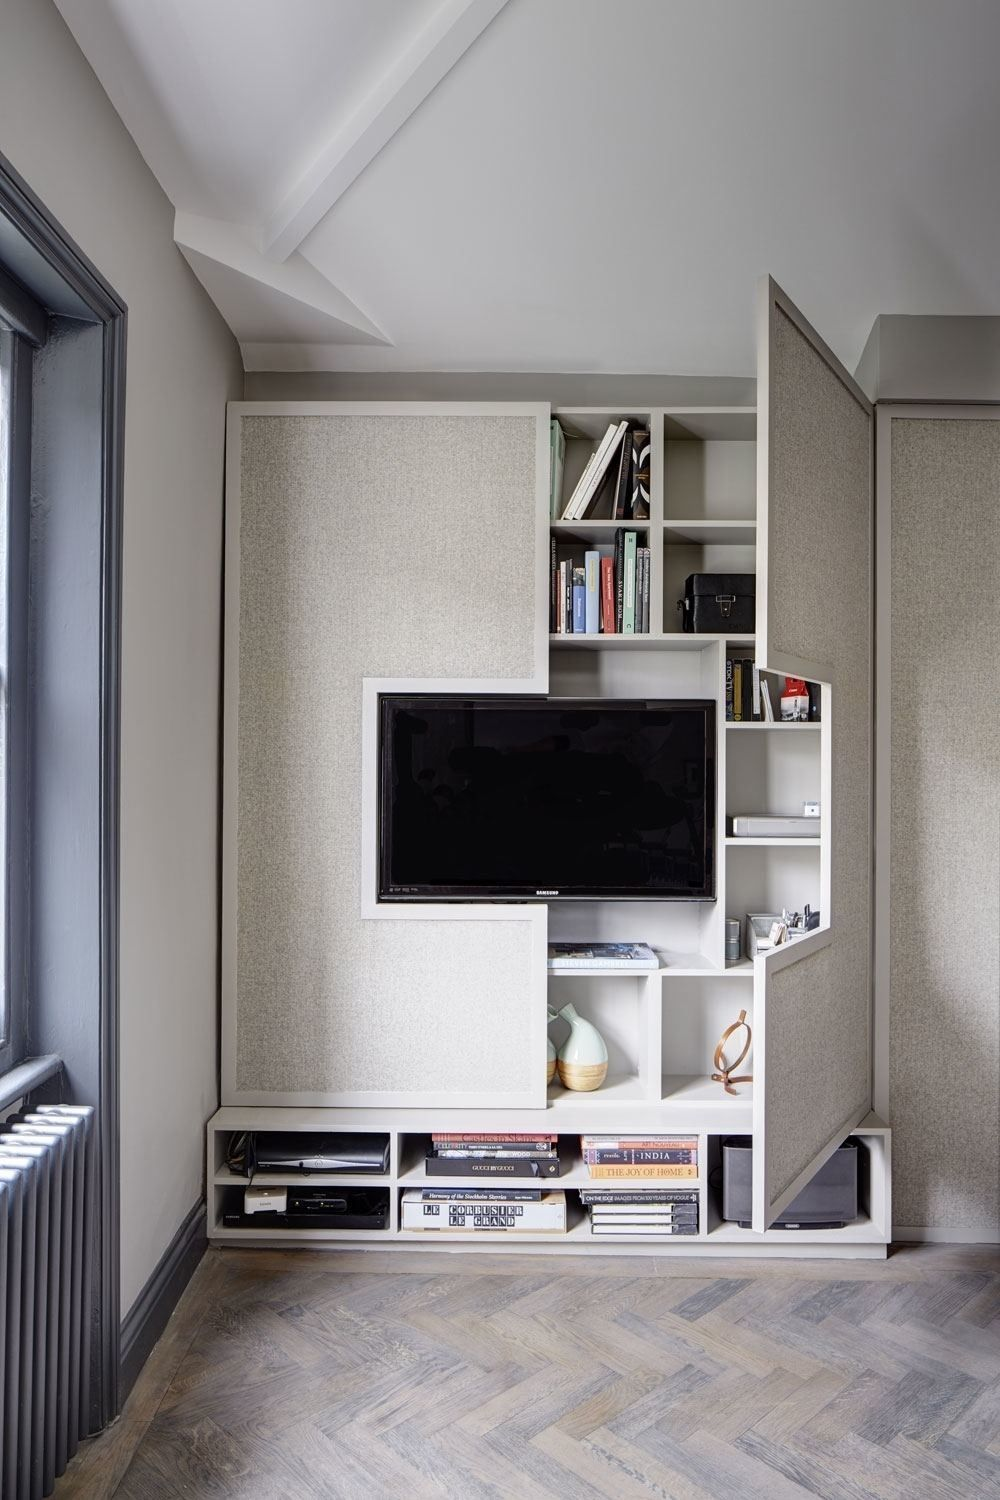 14 Hidden Storage Ideas For Small Spaces Bedroom Storage Home